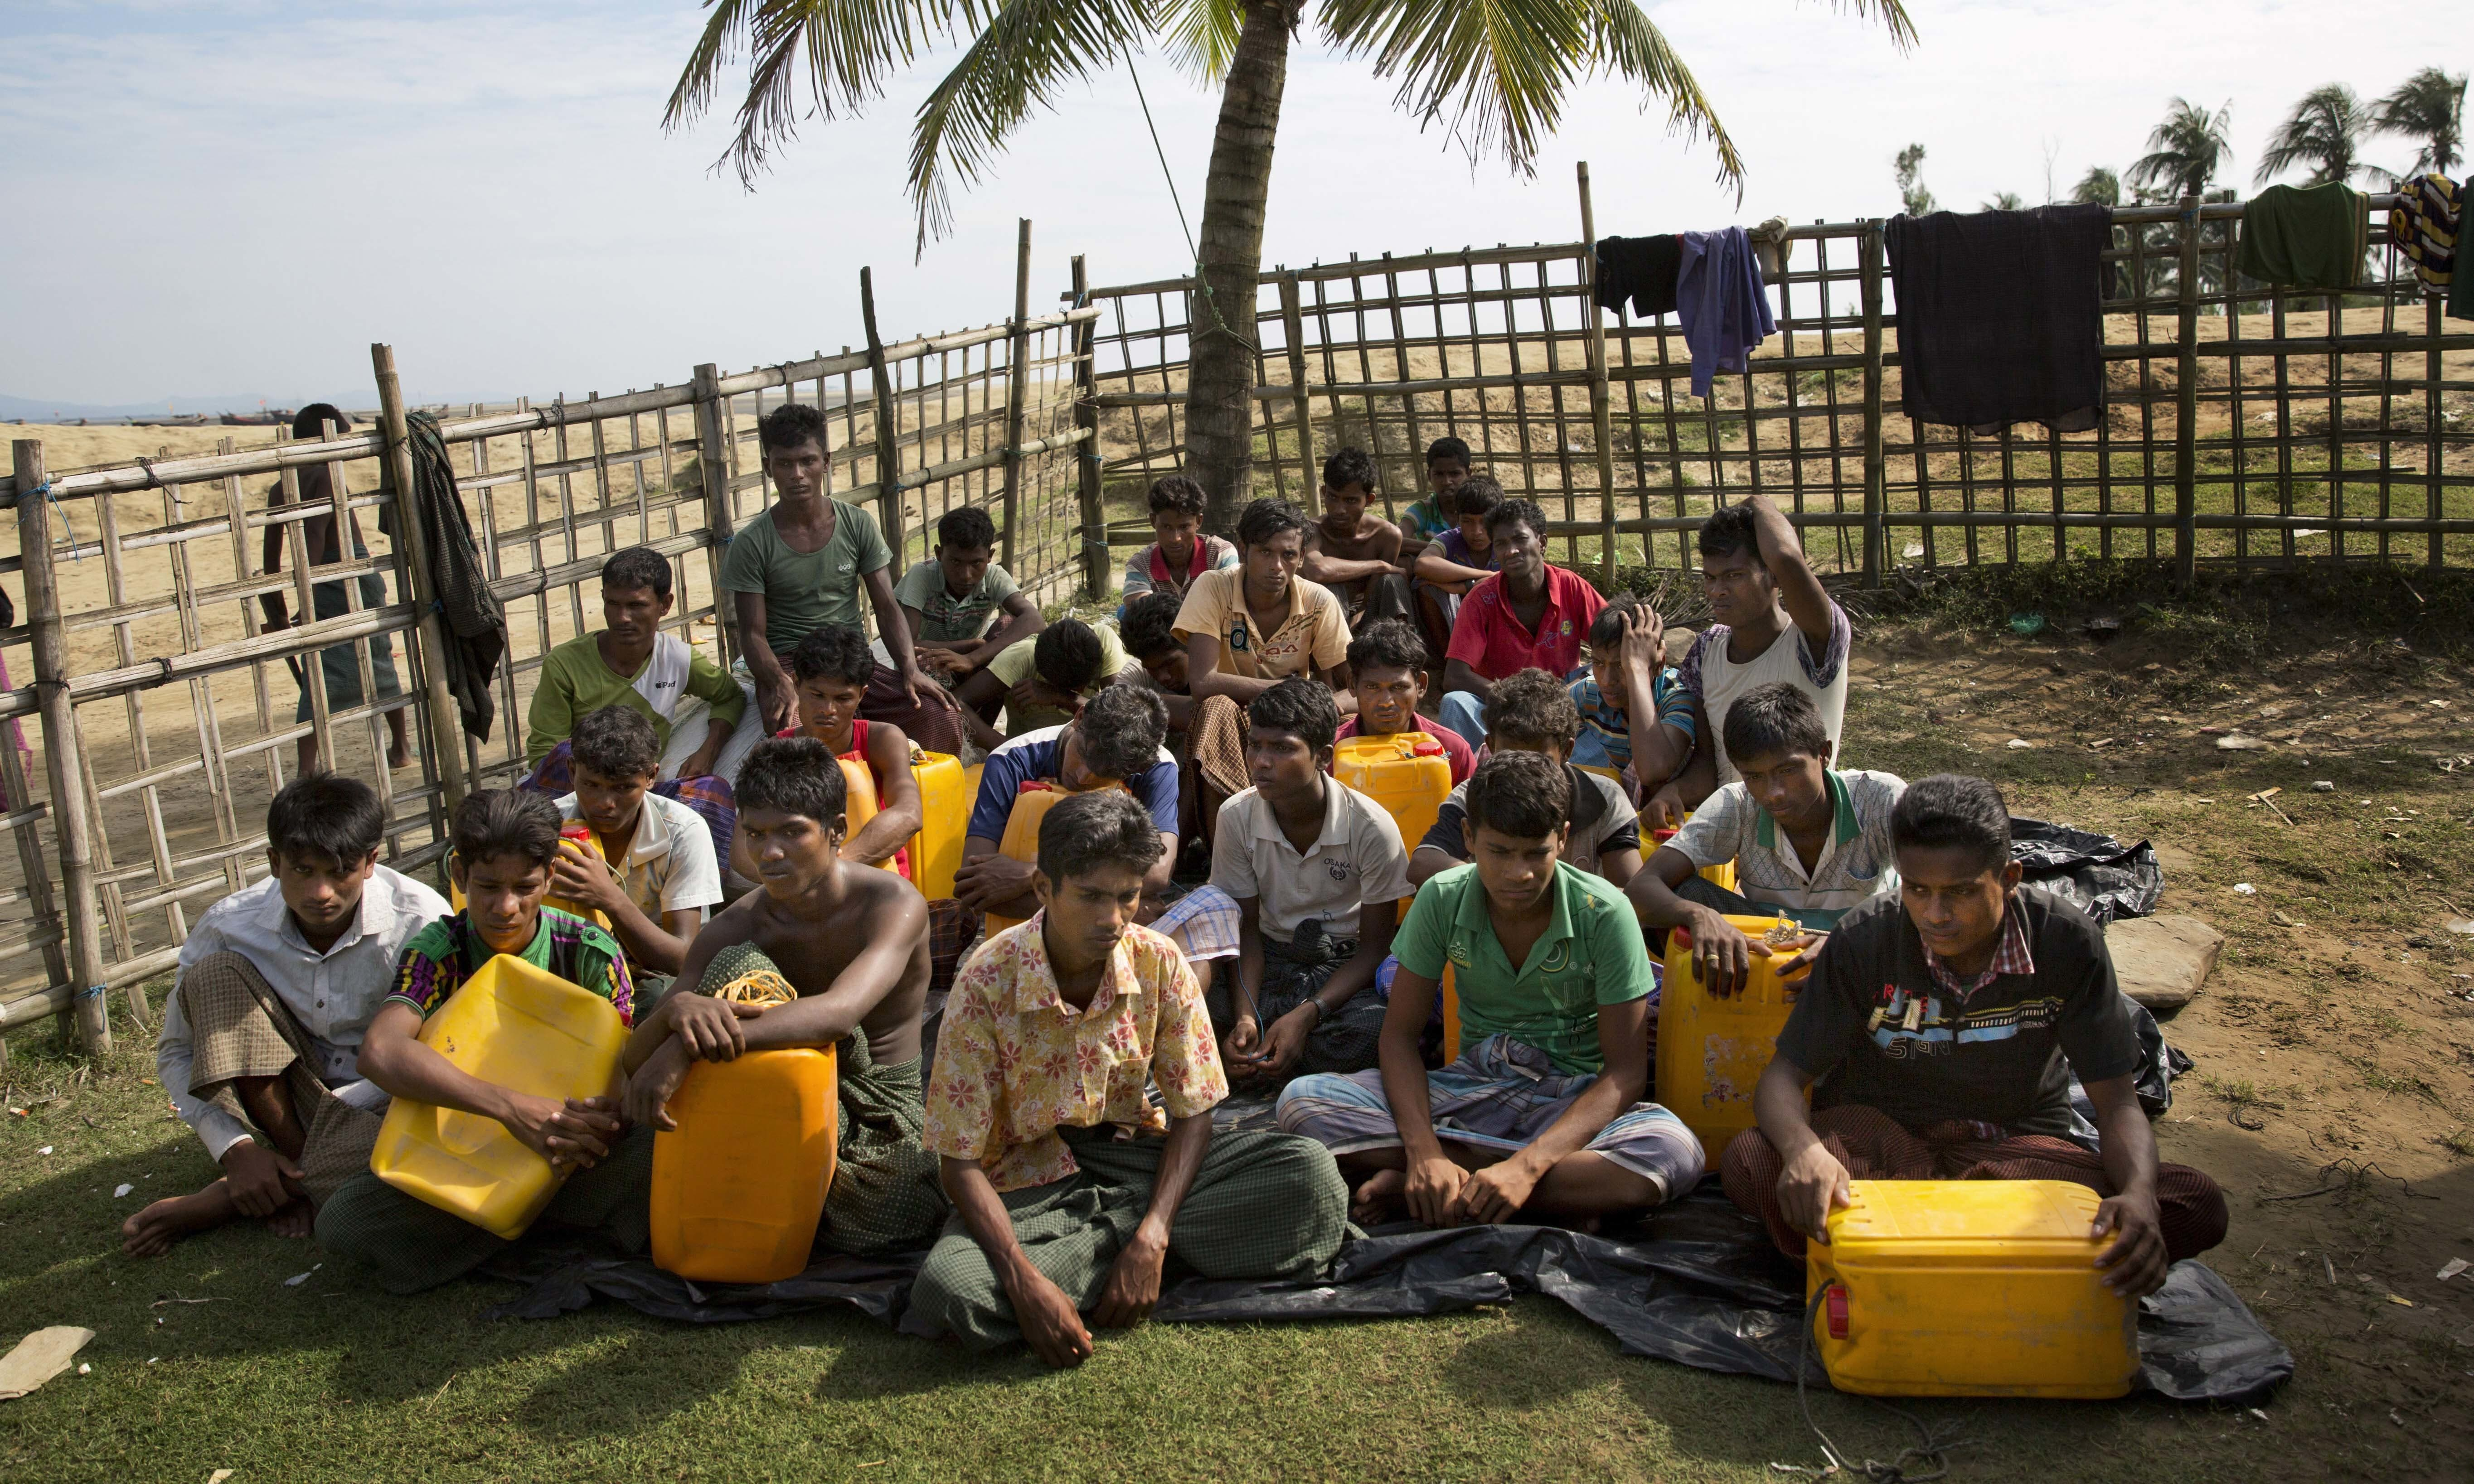 In this Nov. 4, 2017, photo, newly arrived Rohingya Muslims with yellow plastic drums they used to aid flotation while crossing the Naf river wait in Shah Porir Dwip to be transferred to a refugee camp in Cox's Bazar, Bangladesh. The Naf river is a natural border between Myanmar and Bangladesh. —AP